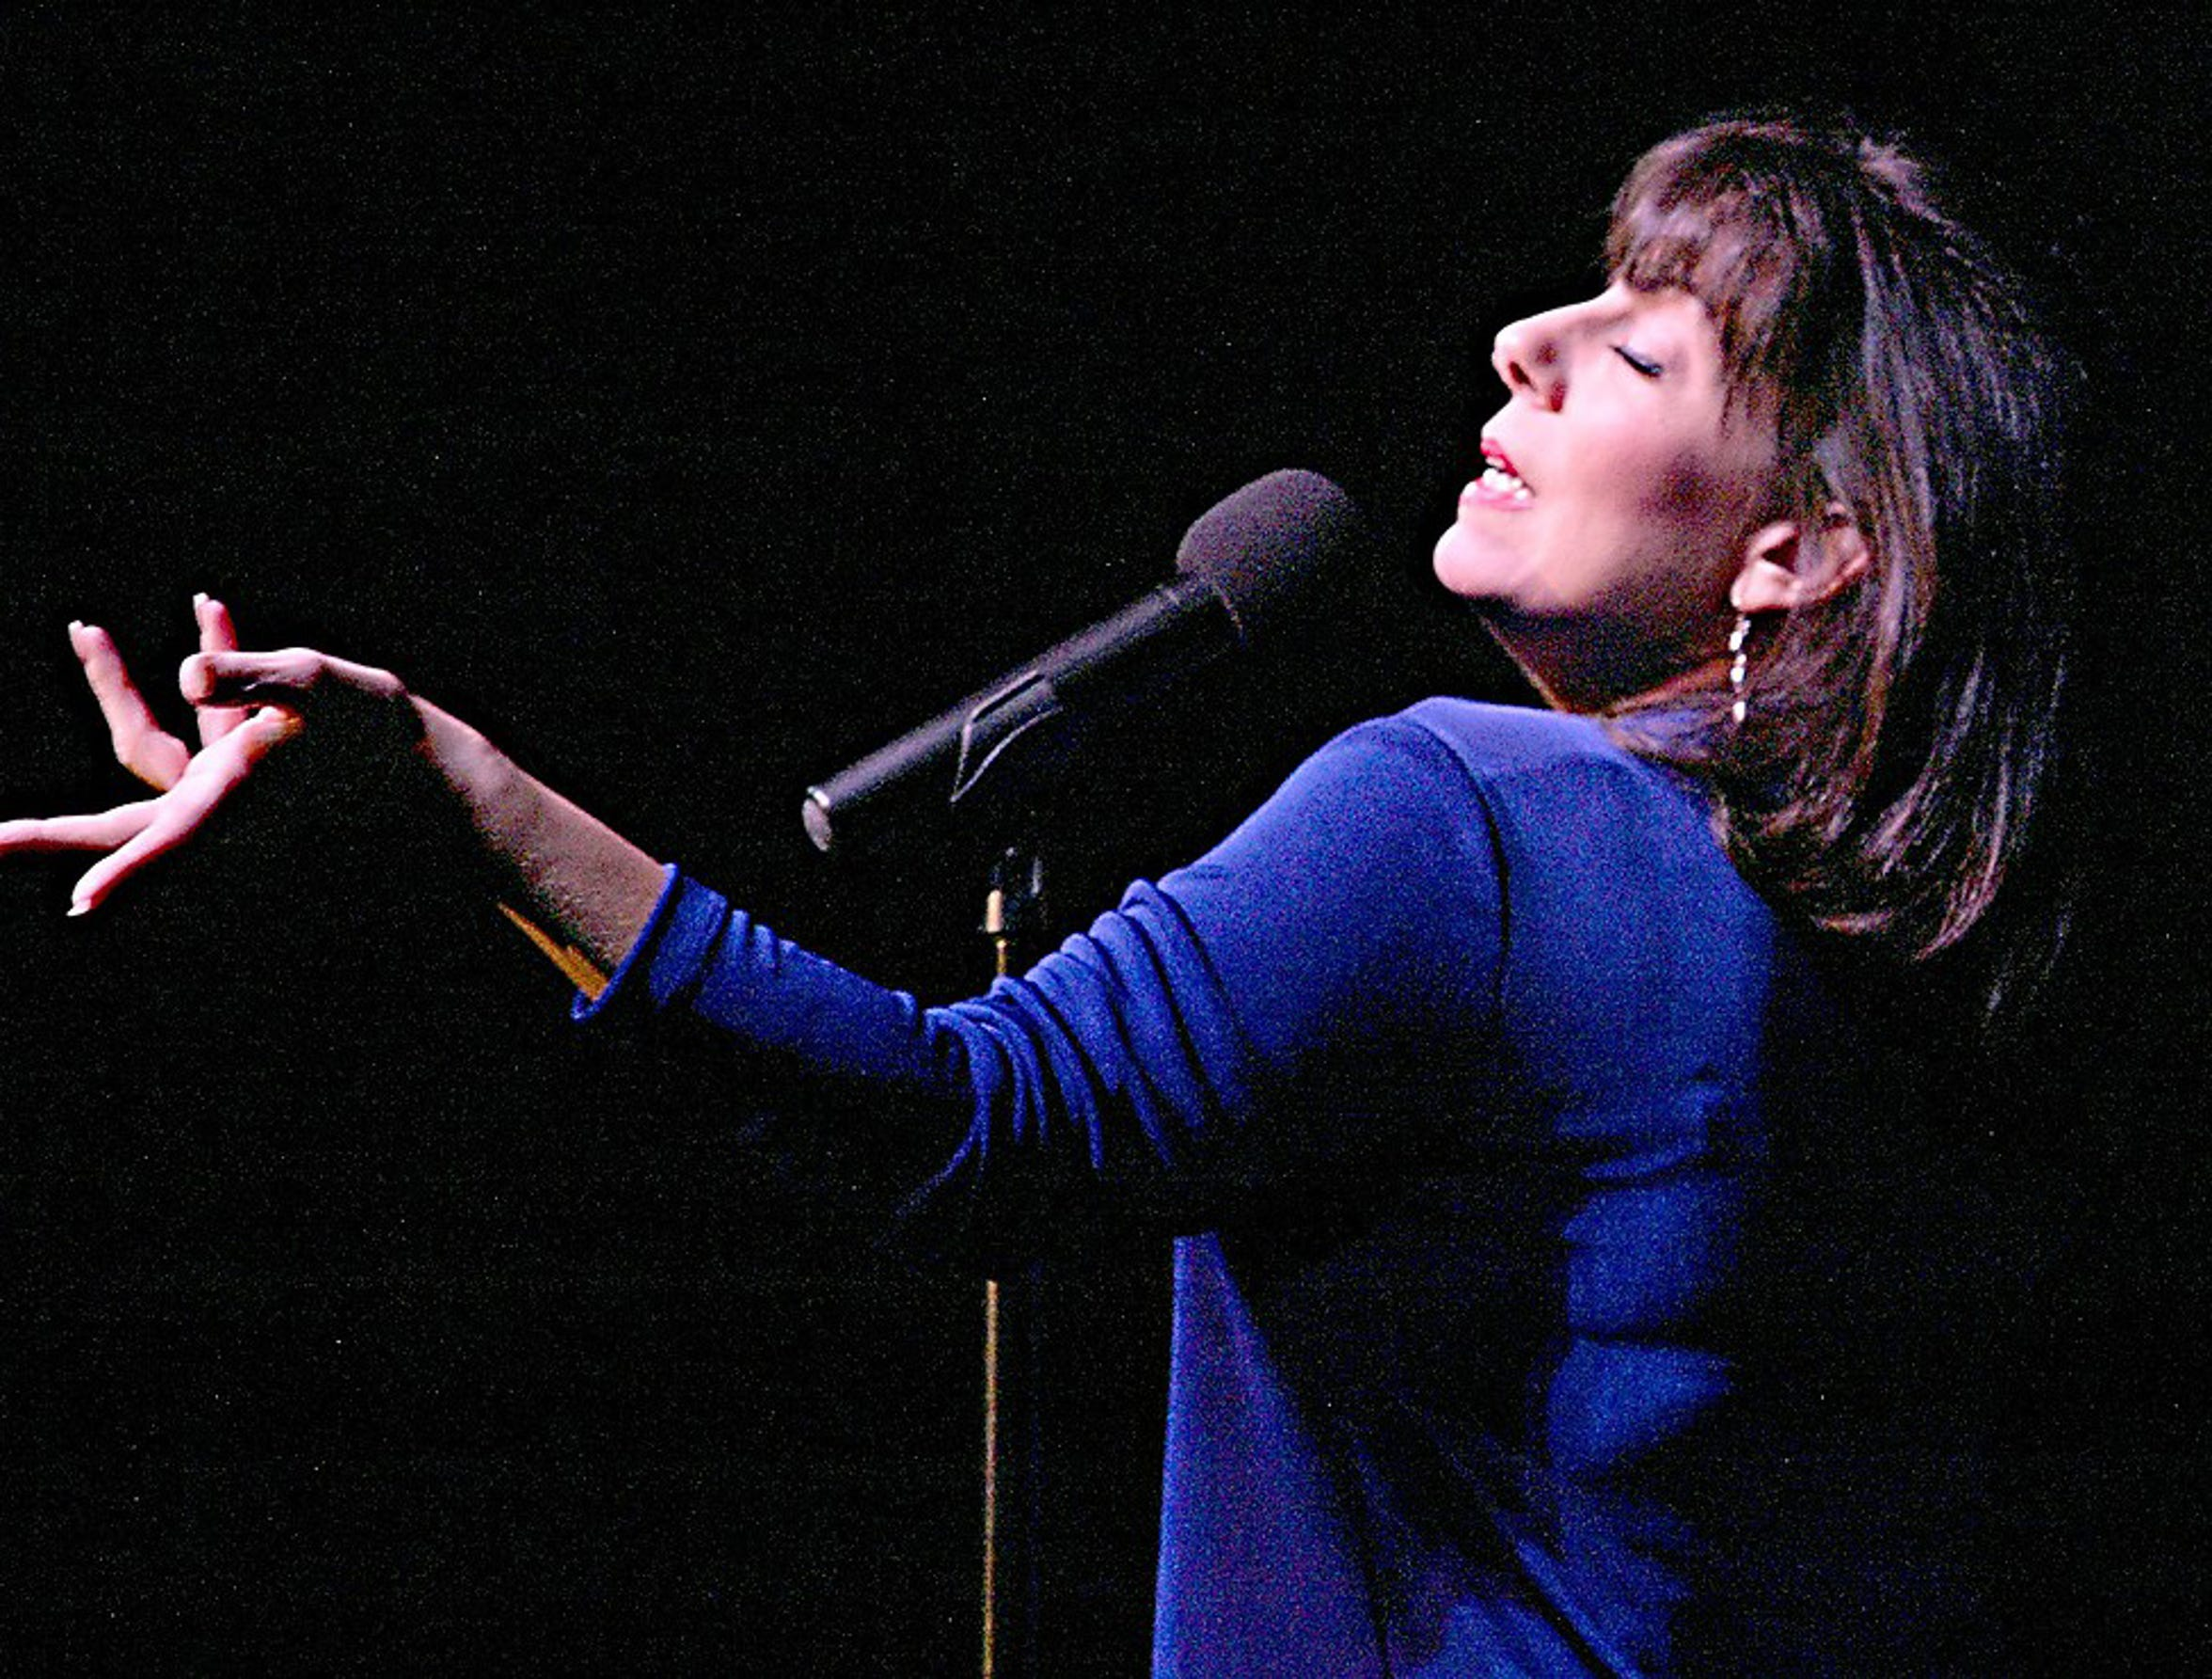 The Harbor Playhouse presents An Evening with Christine Pedi at 7 p.m. Saturday, Aug. 18 at 1802 N. Chaparral St.